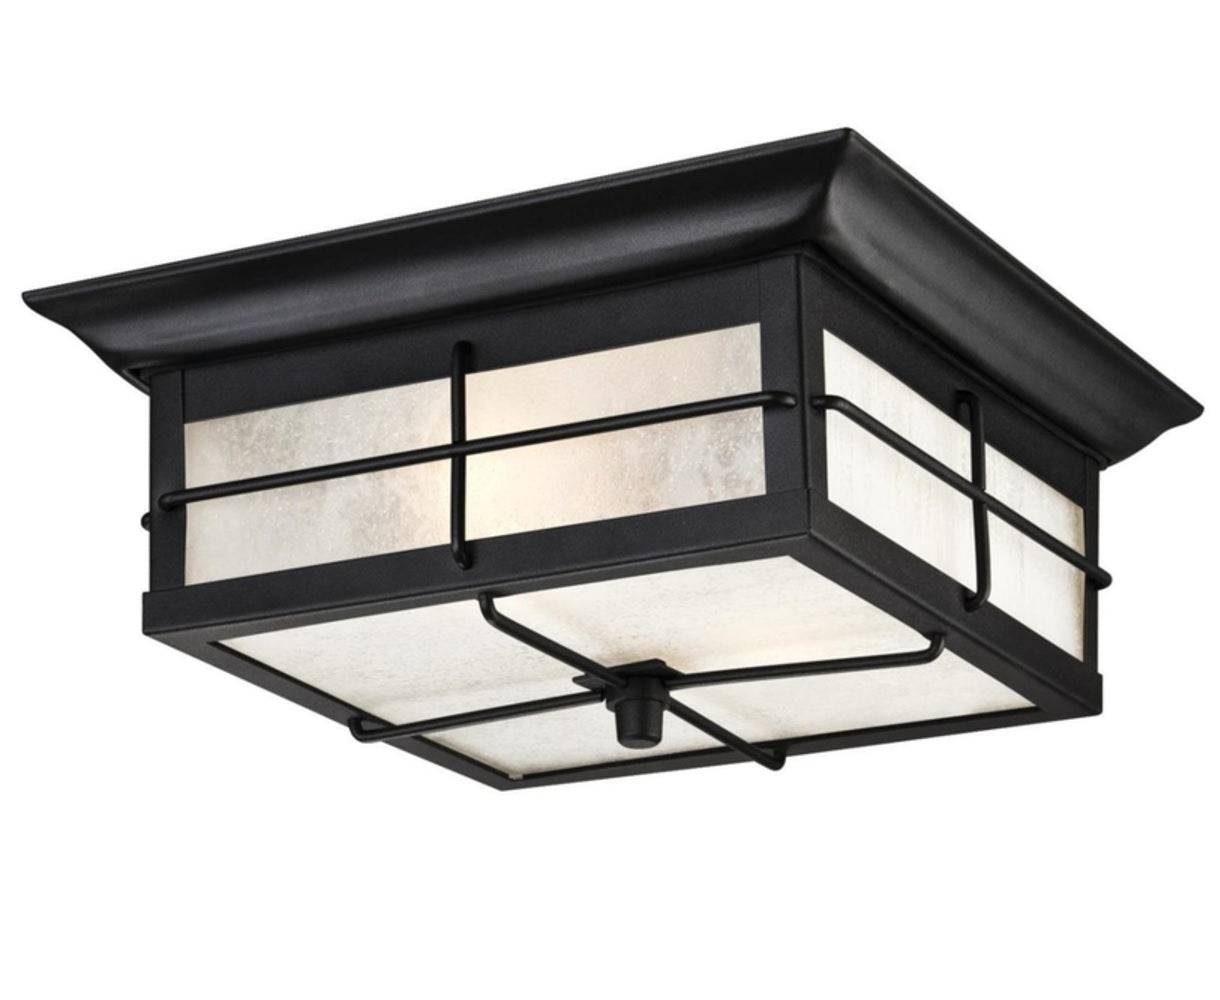 Westinghouse 62048 Orwell Two-light Outdoor Flush Fixture